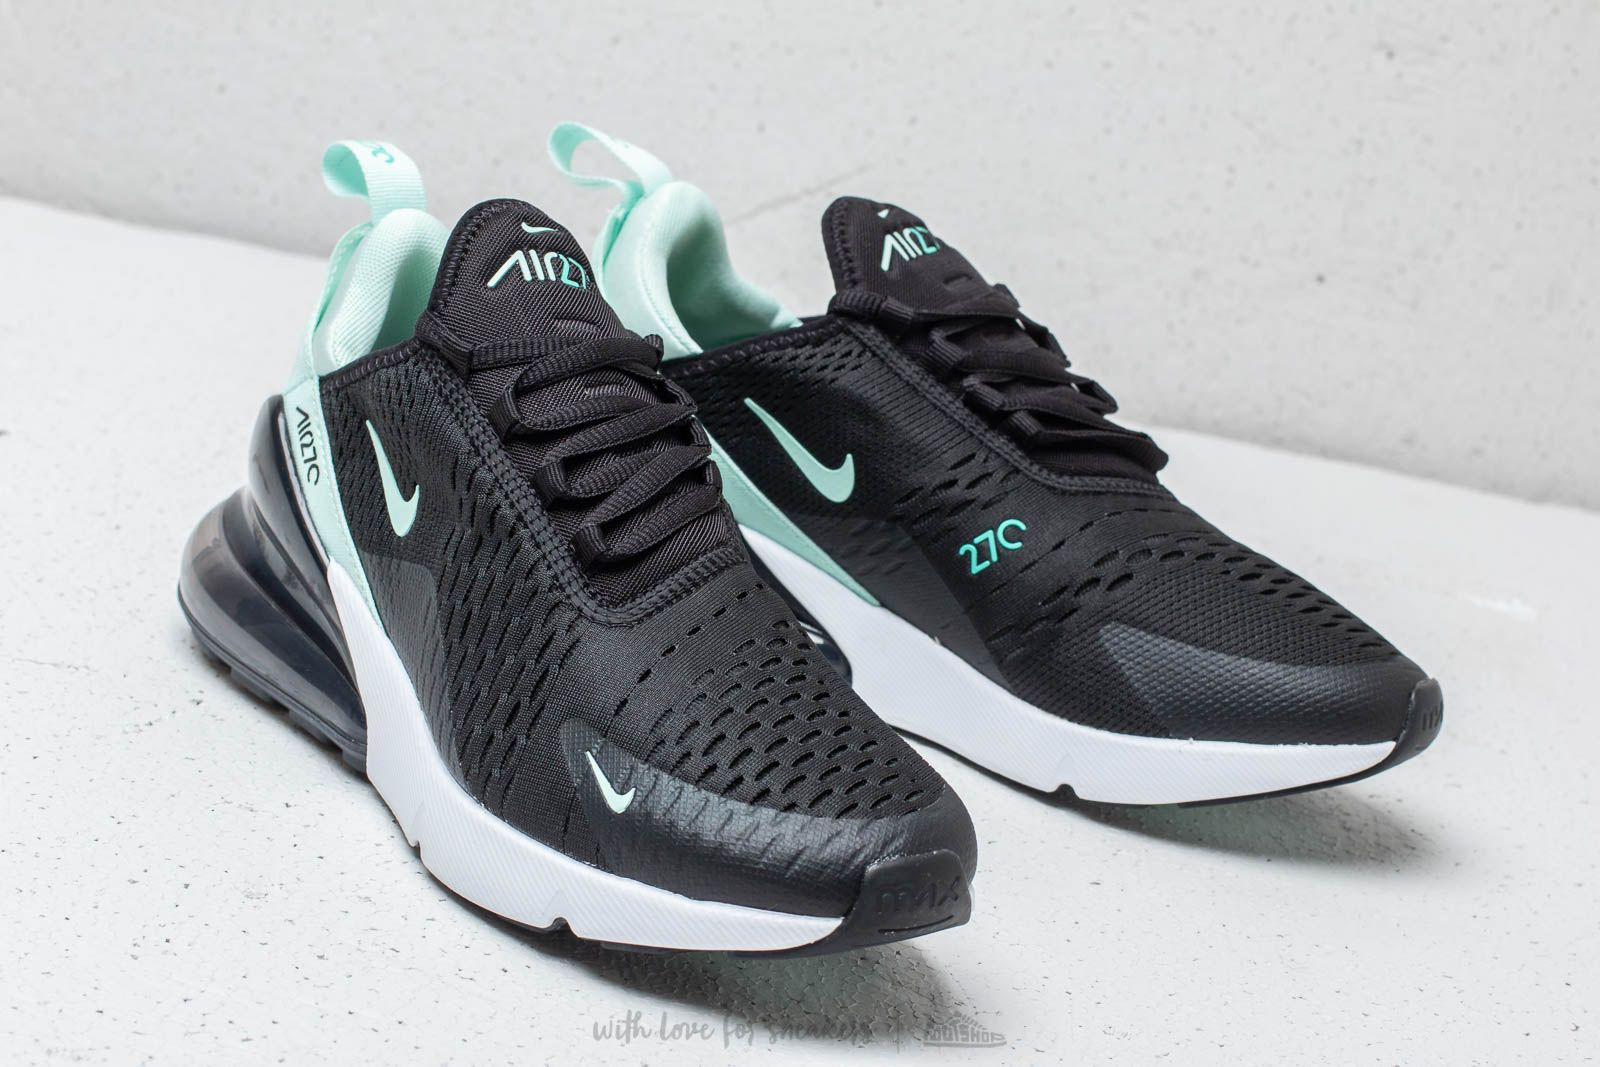 Nike W Air Max 270 Women Shoes, Trainers, BlackIglo Hyper